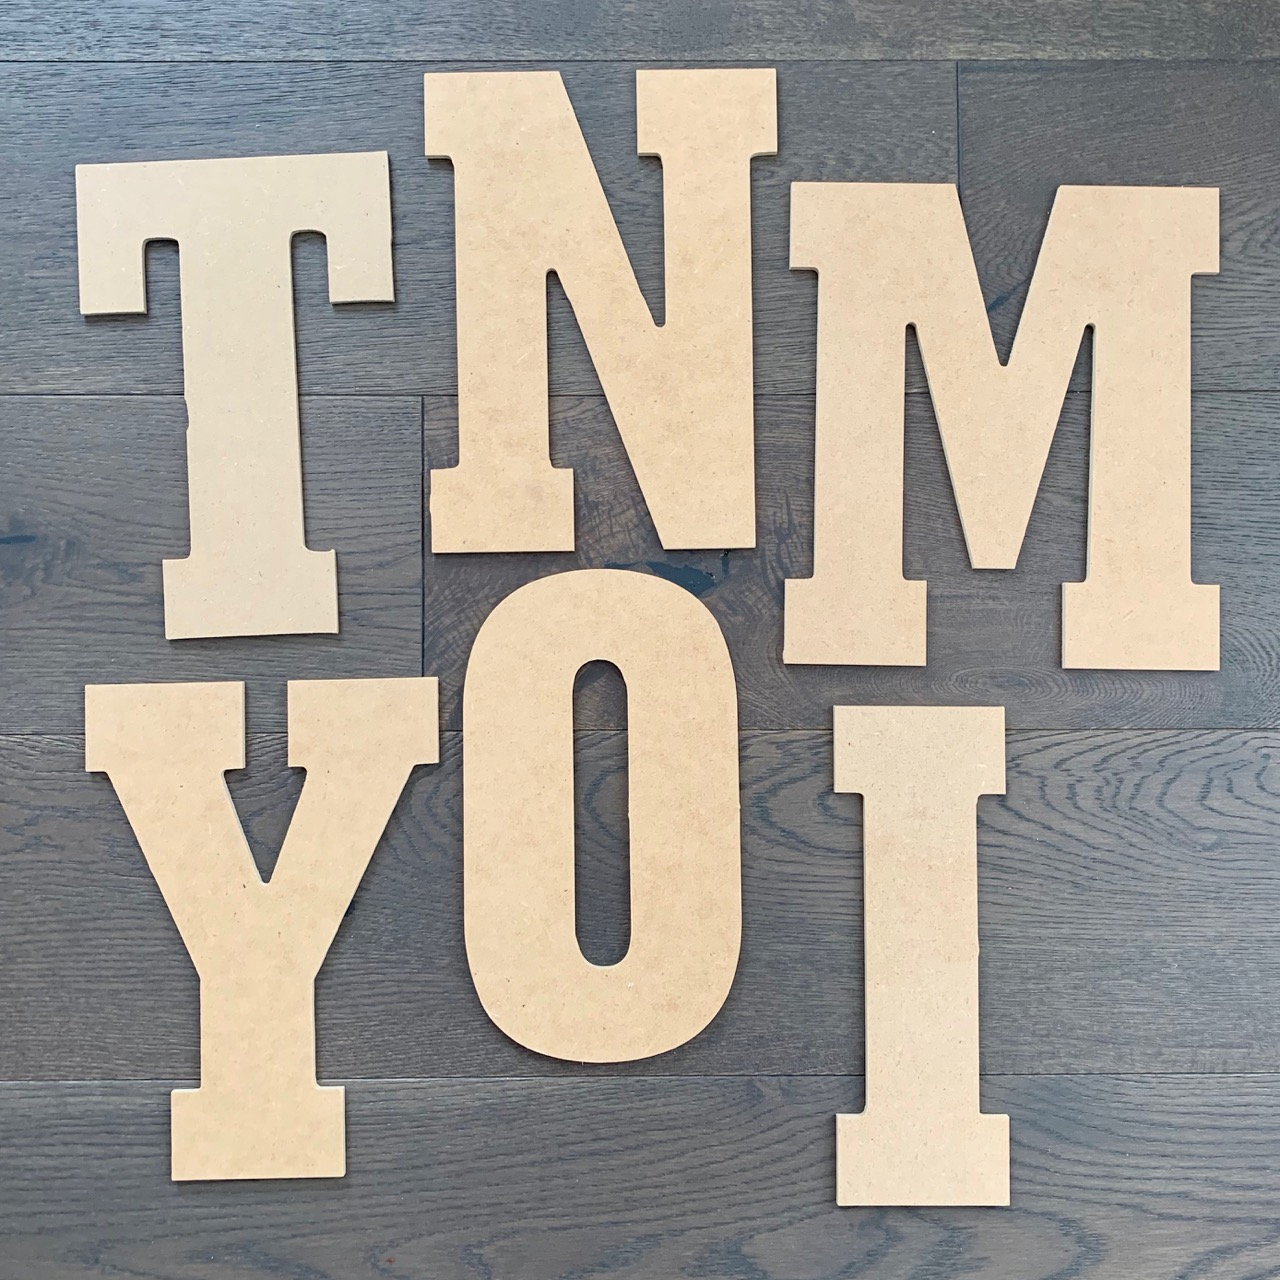 $4 each - Largest letter measures 9.5 inches by 10..75 inches - Letter's available I, Y, L, W, H, S, C, M, T, N, O These would be cute in the wood frames I am showing above. Price includes being painted or stained a colour to match your decor